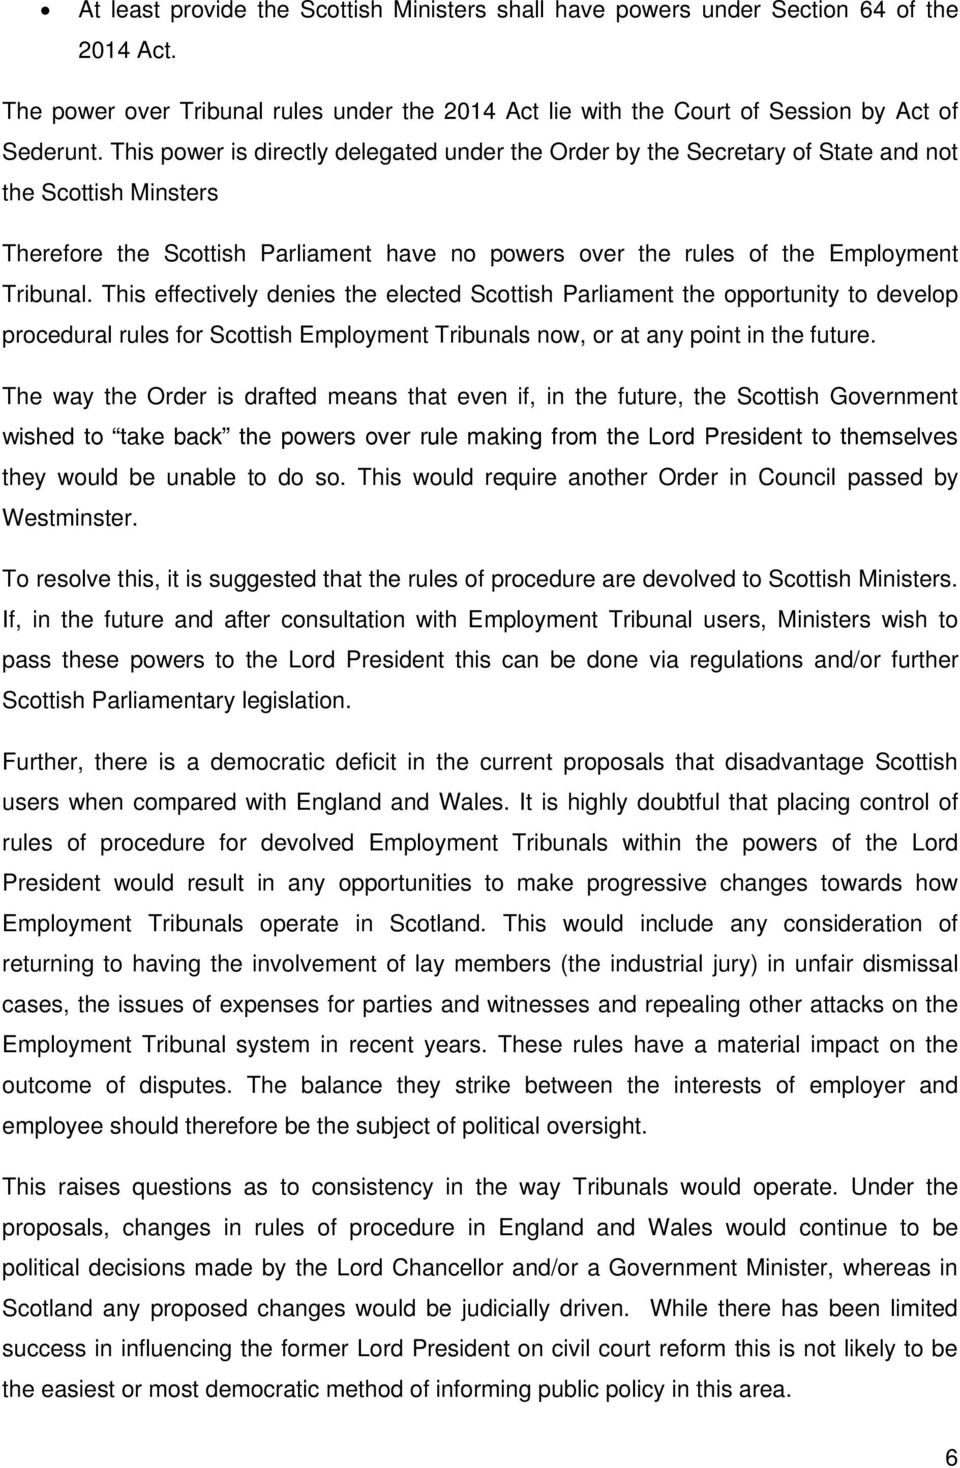 This effectively denies the elected Scottish Parliament the opportunity to develop procedural rules for Scottish Employment Tribunals now, or at any point in the future.